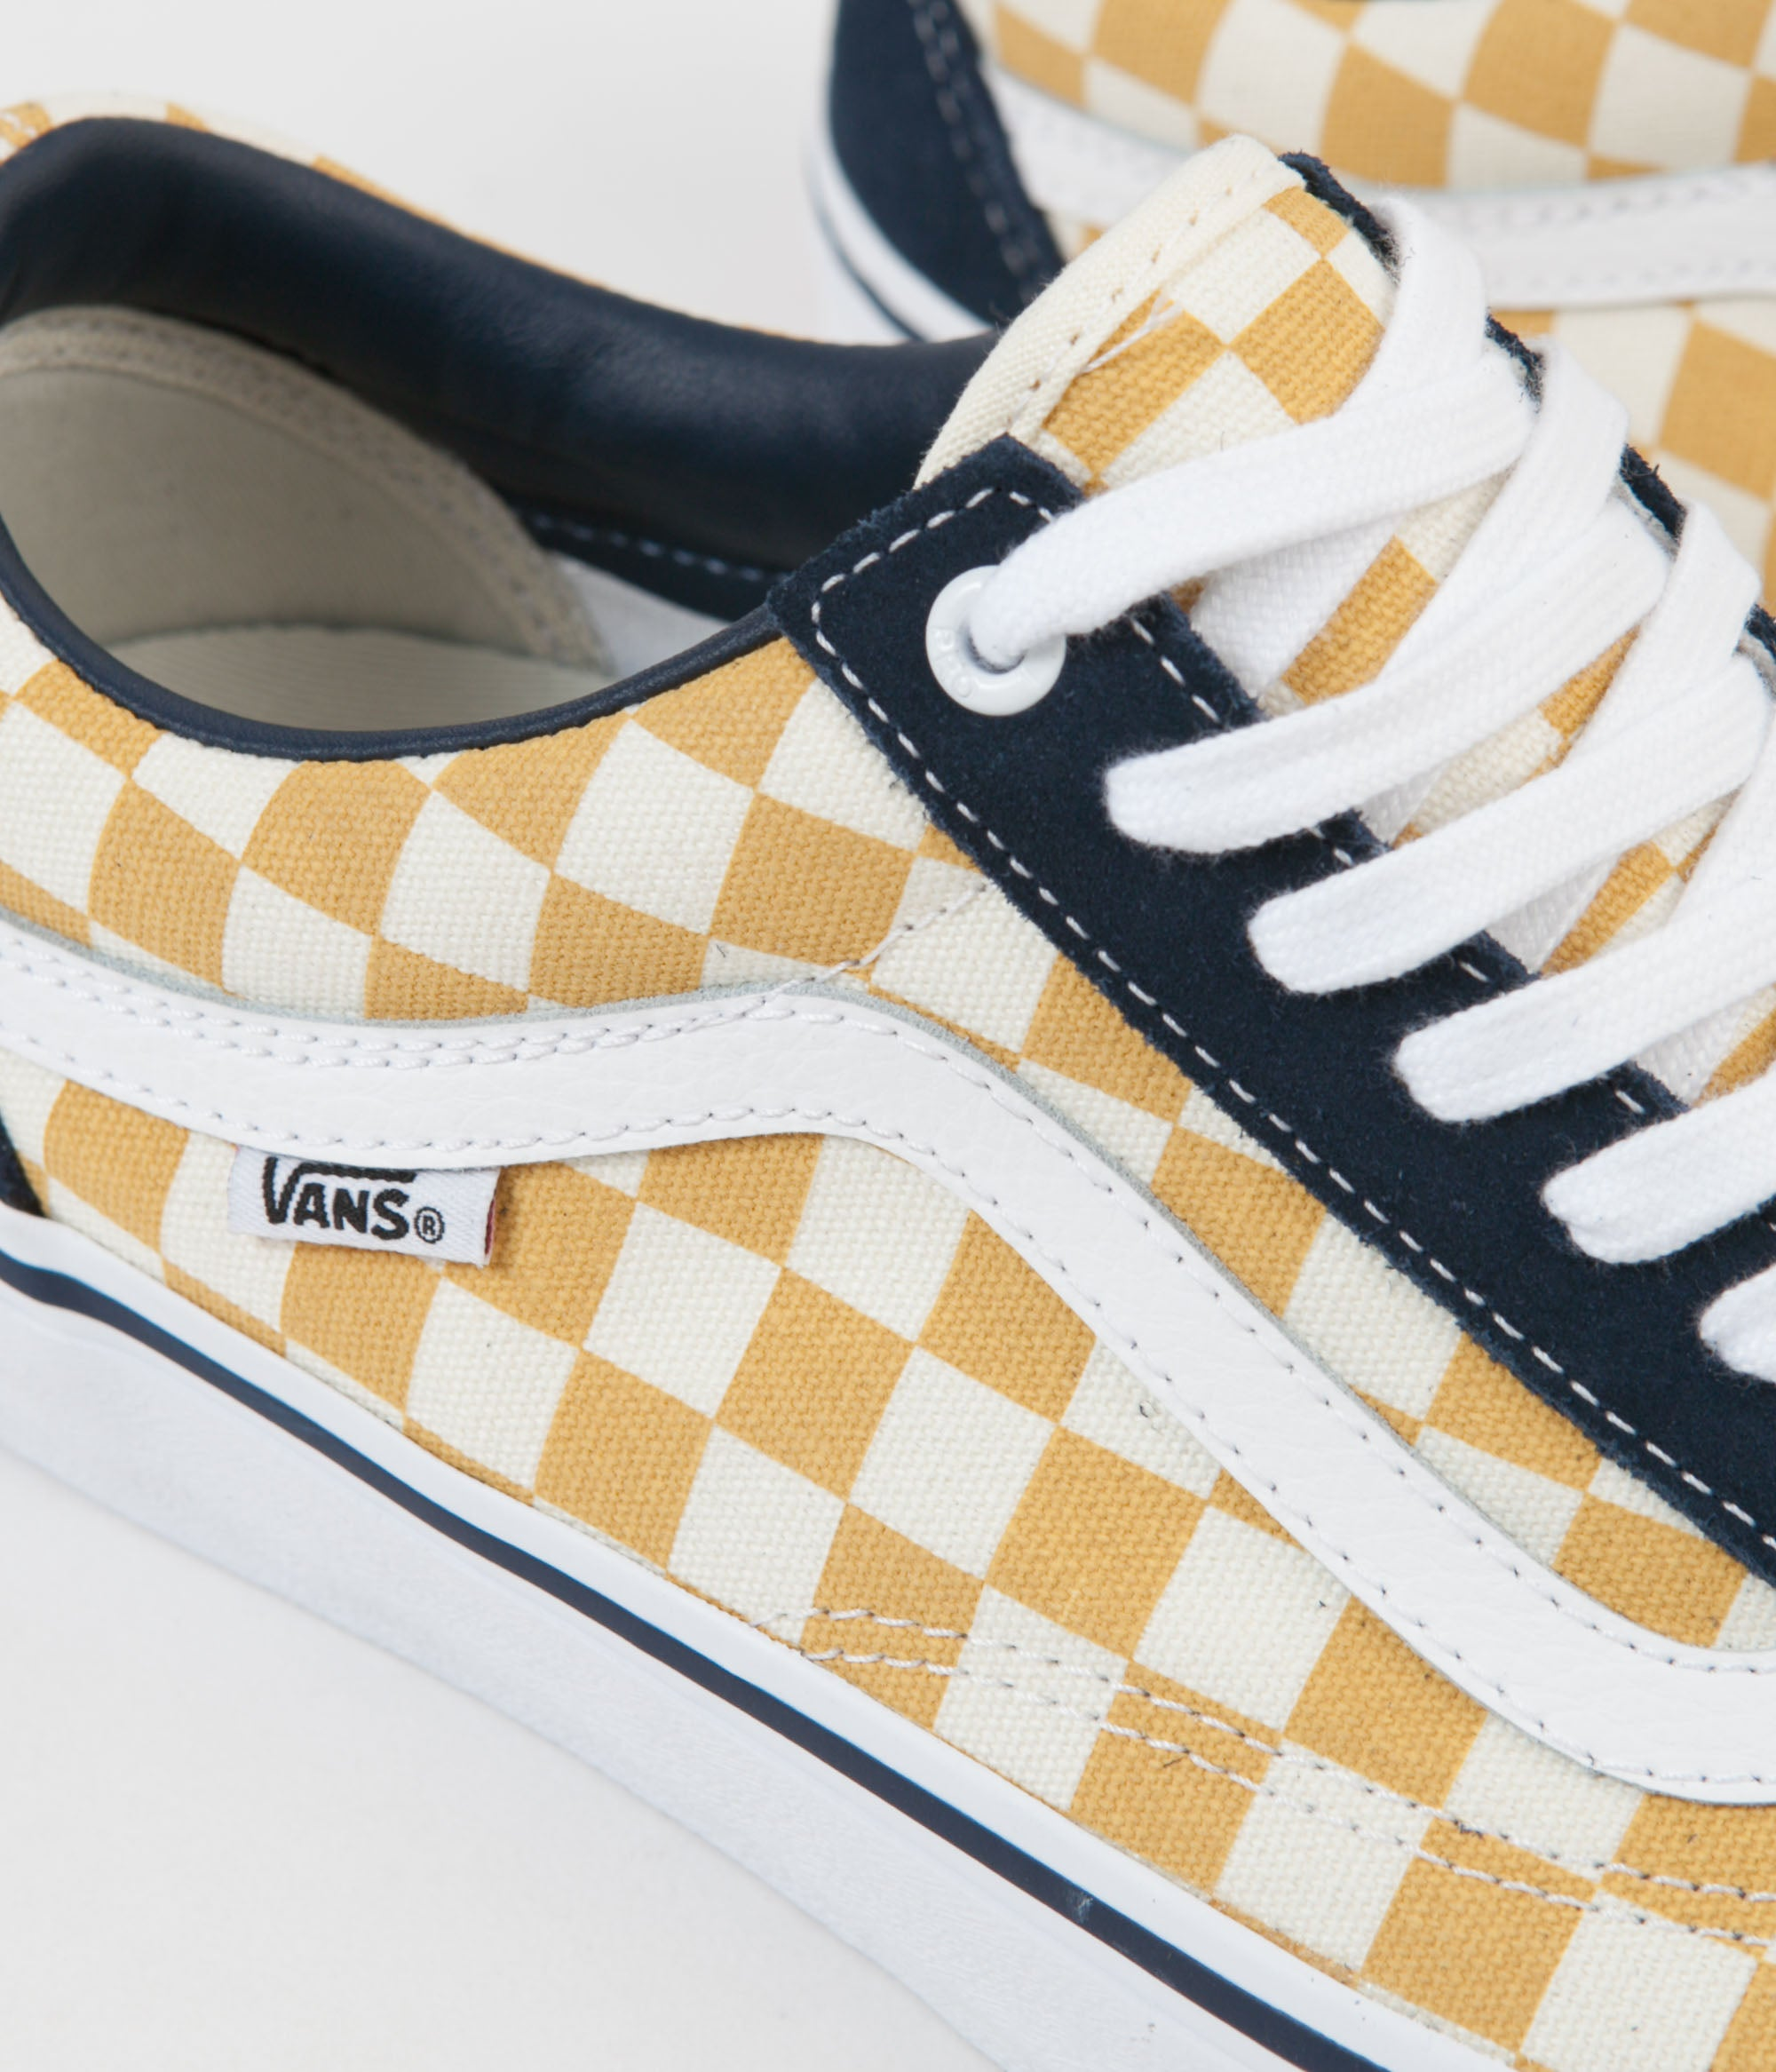 4d5c6c5d986f88 ... Vans Old Skool Pro Checkerboard Shoes - Dress Blues   Ochre ...